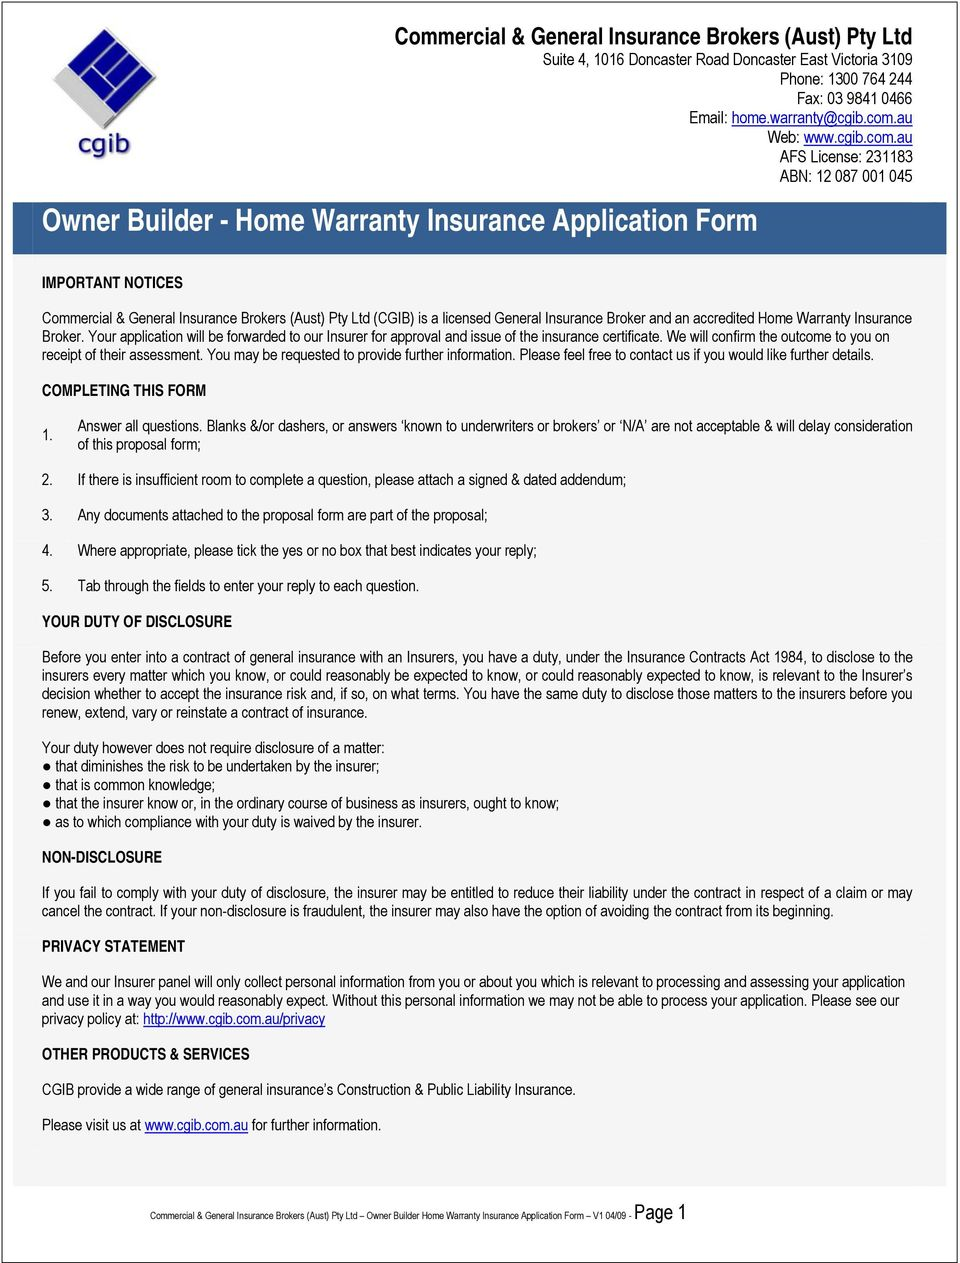 Owner Builder Home Warranty Insurance Application Form